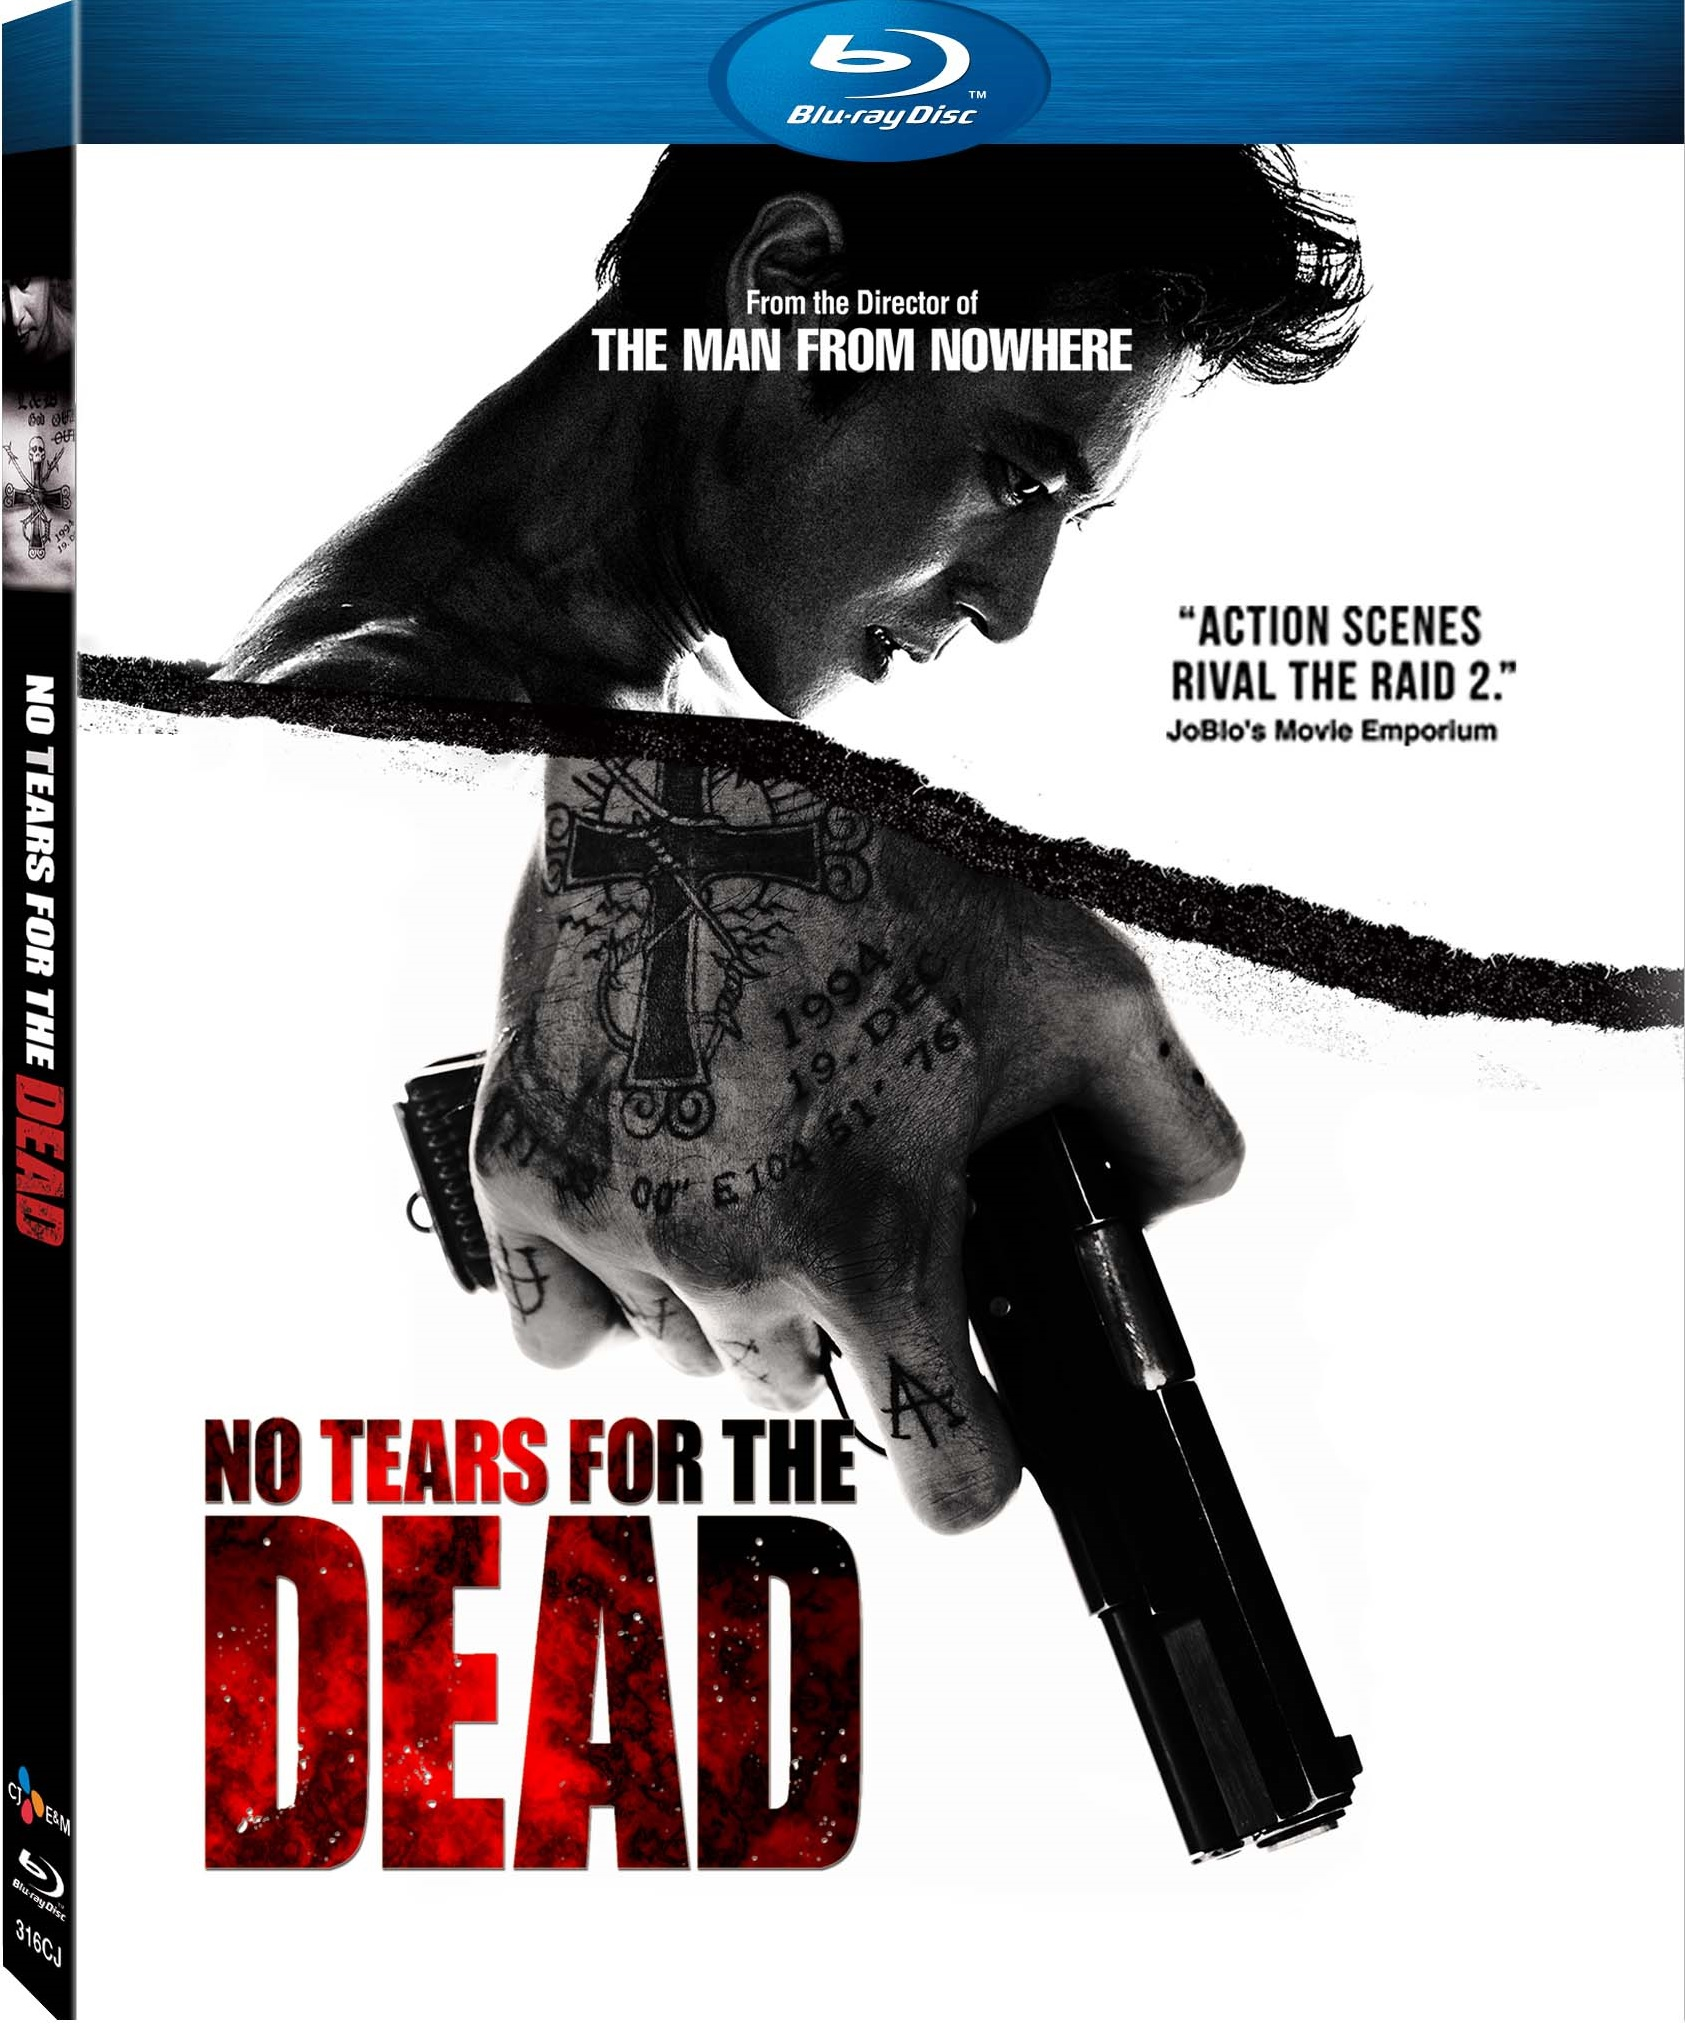 NO TEARS FOR THE DEAD Blu-ray